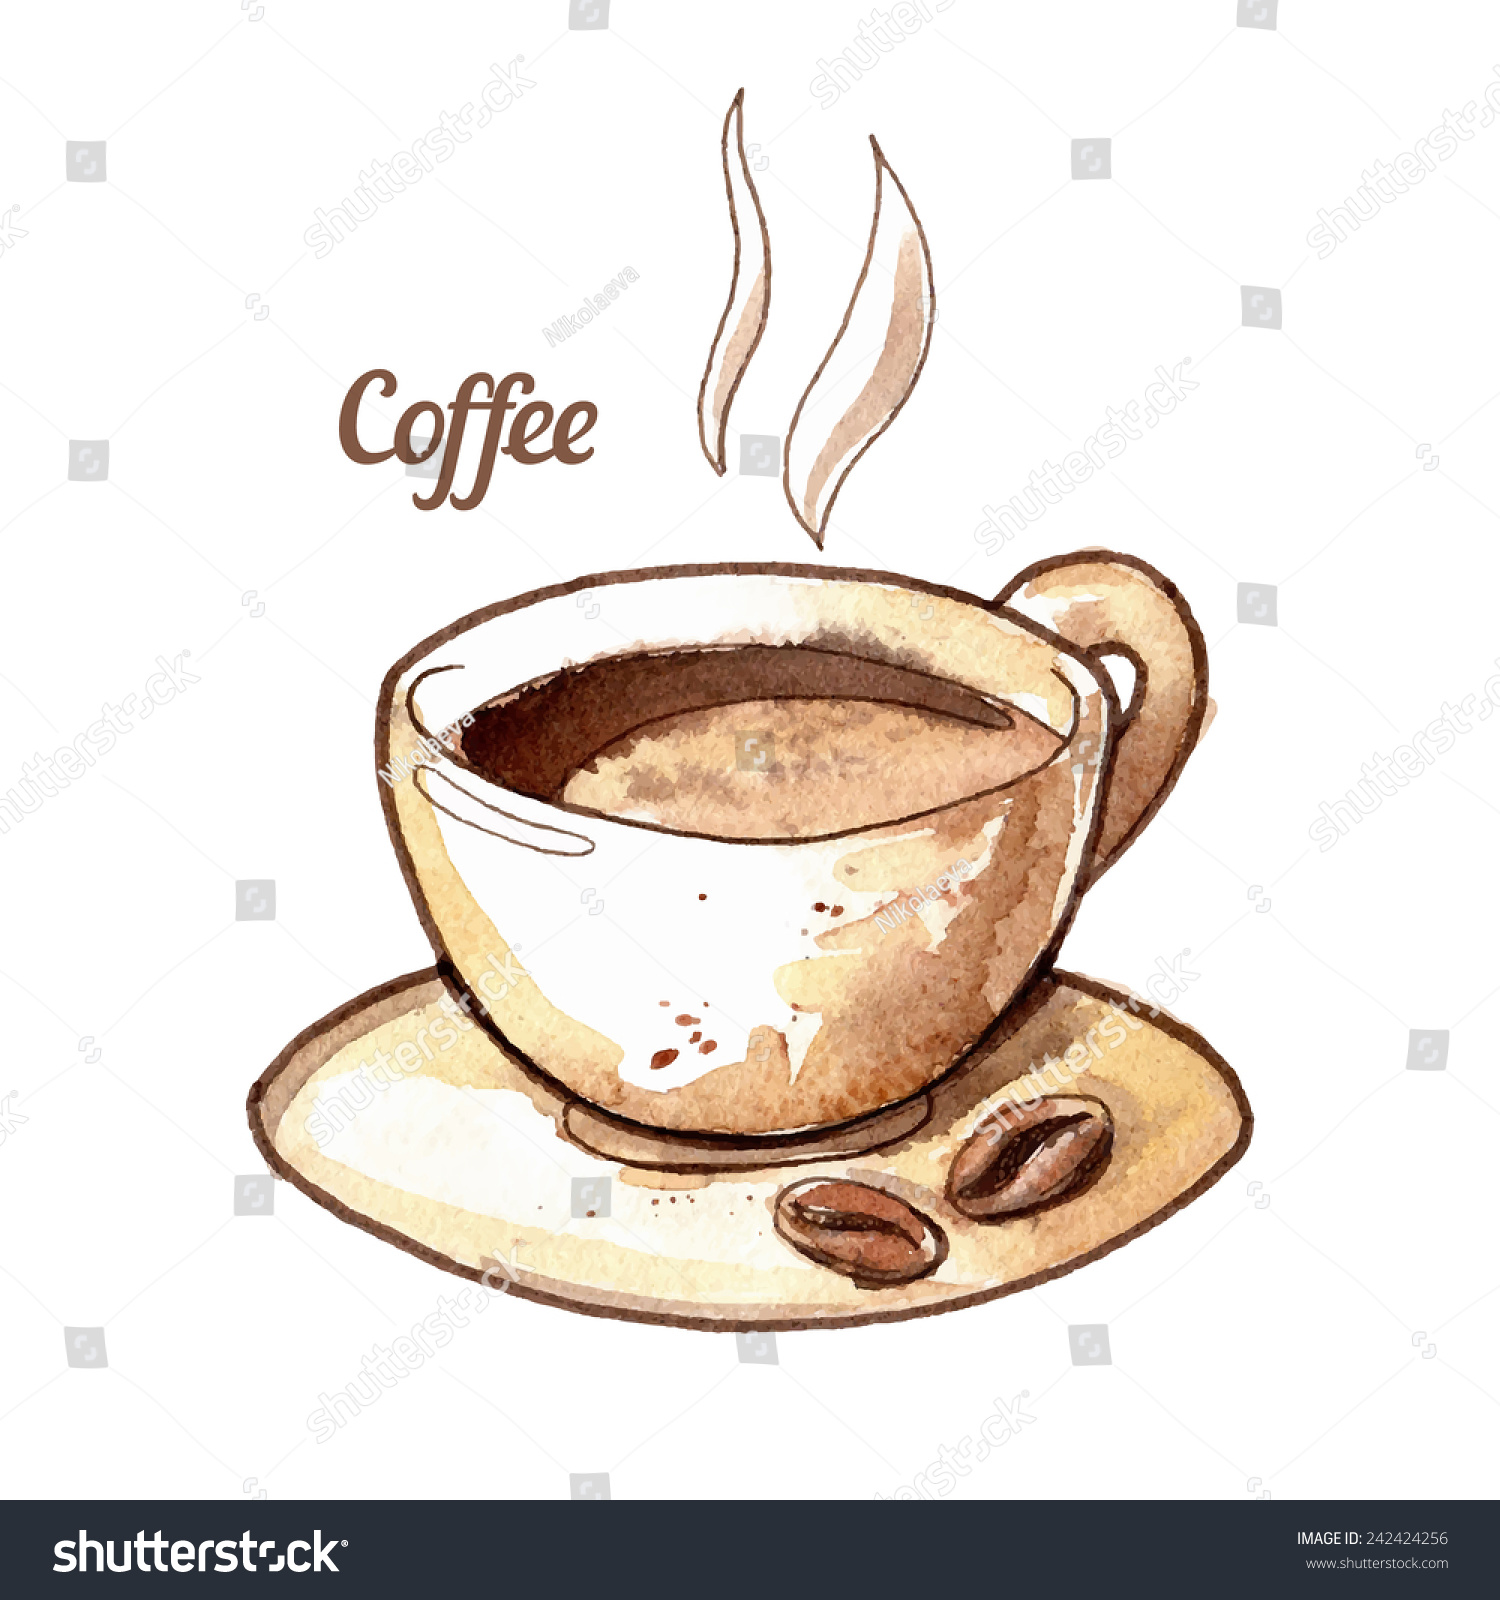 Hand drawn watercolor coffee cup illustration stock vector for Coffee watercolor